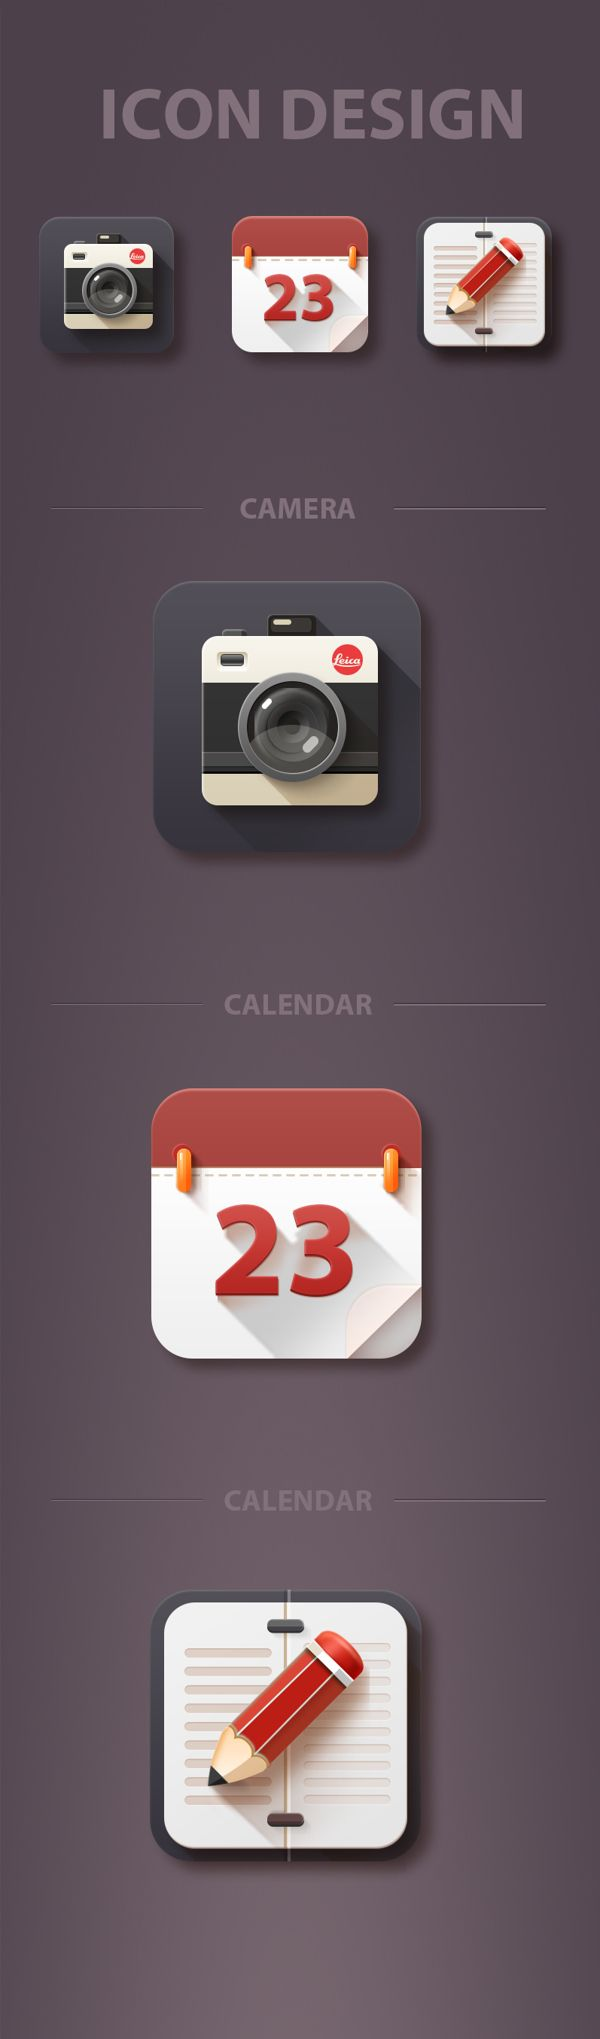 ICON DESIGN_20140319 on Behance